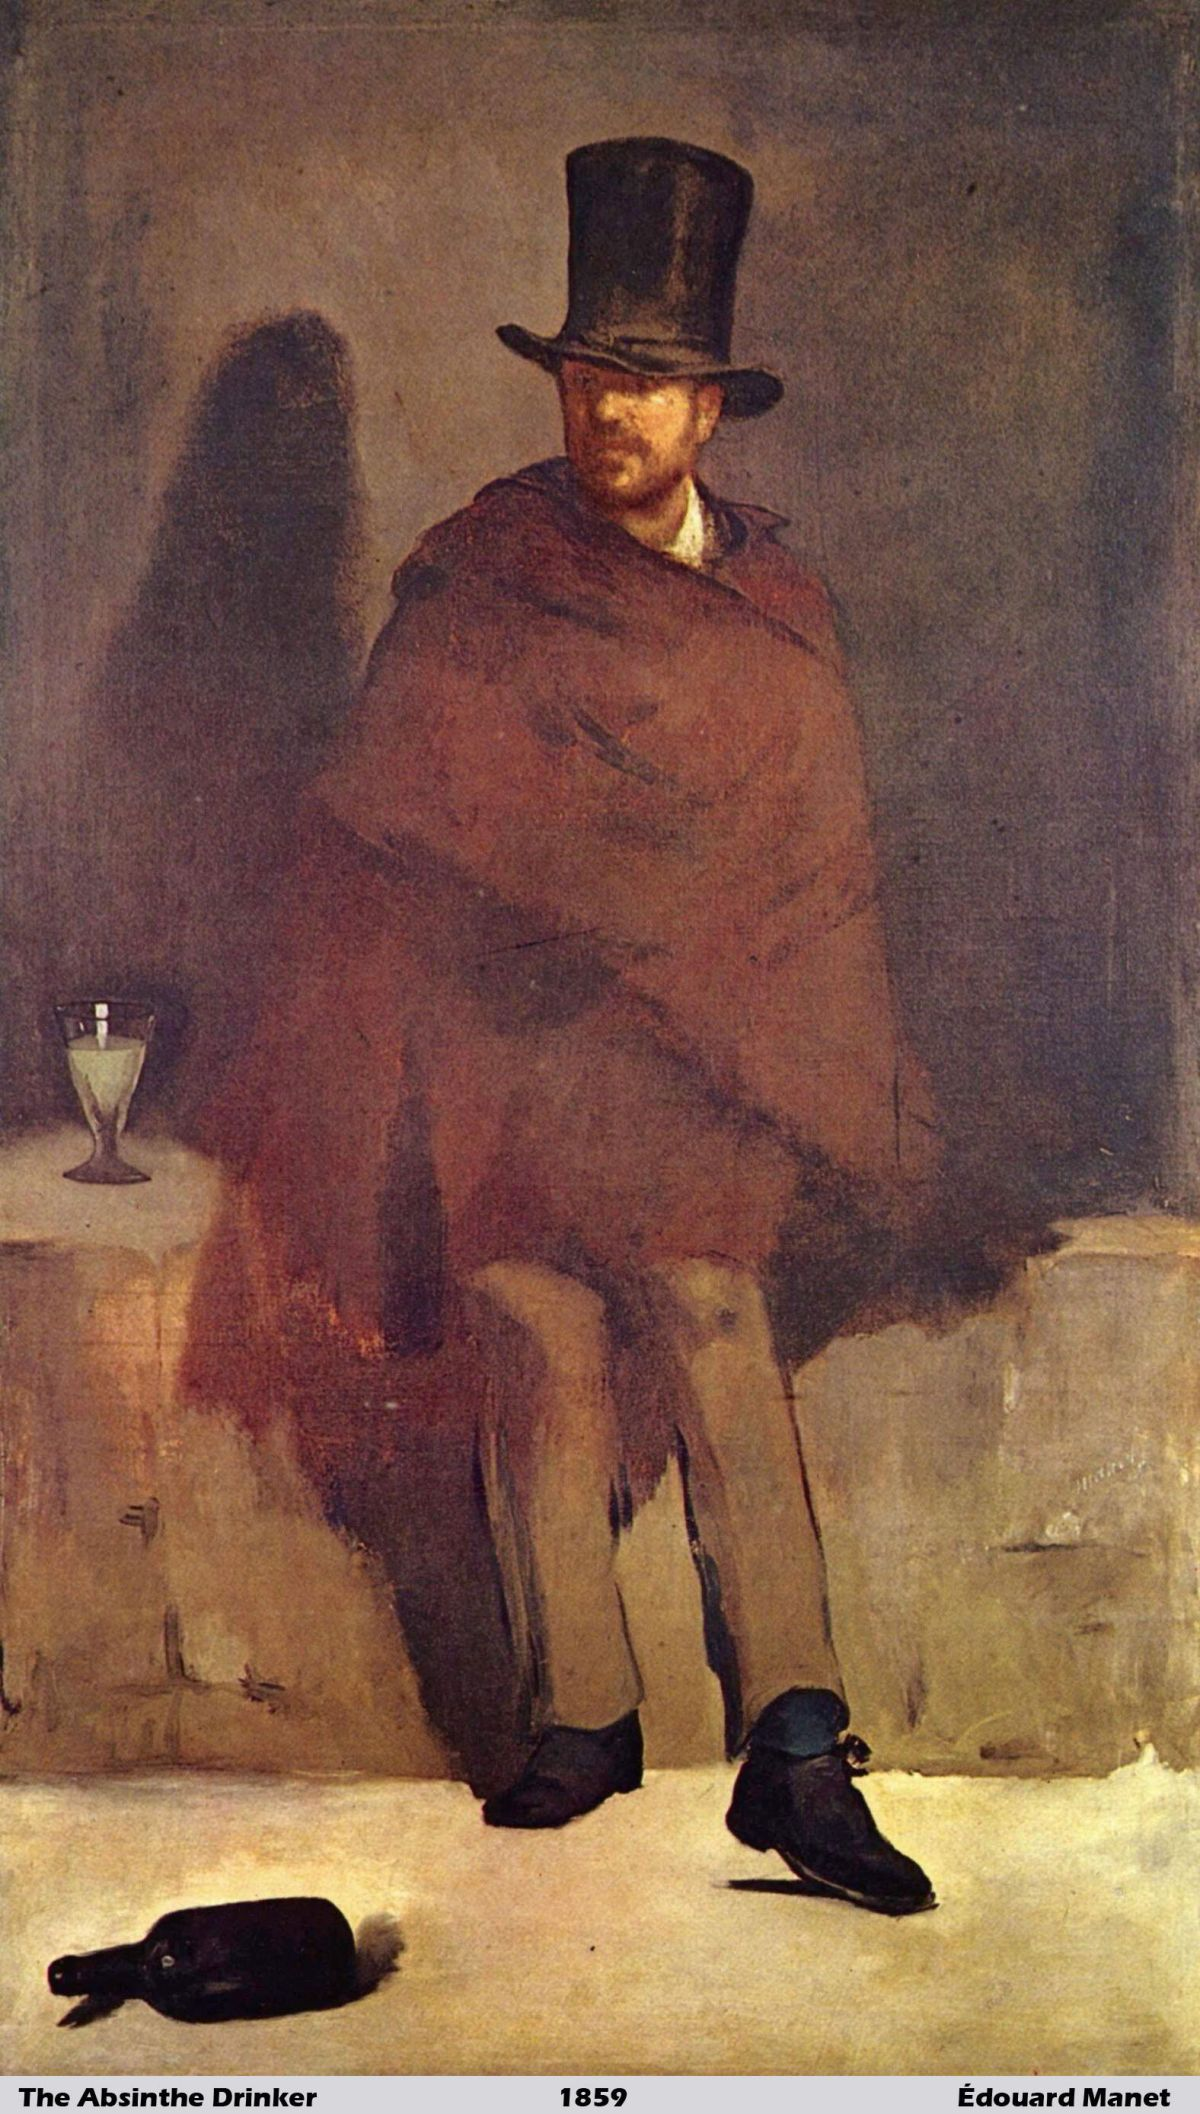 The Absinthe Drinker by Édouard Manet